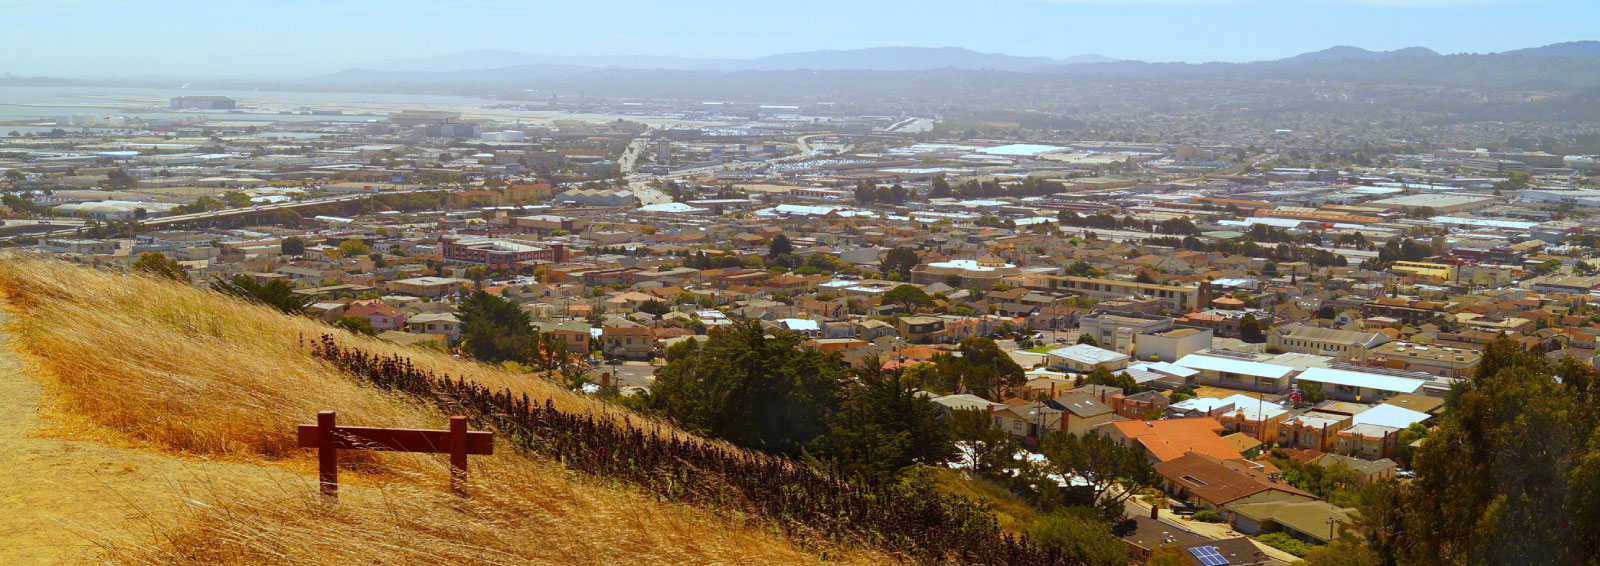 home header, South San Francisco photo